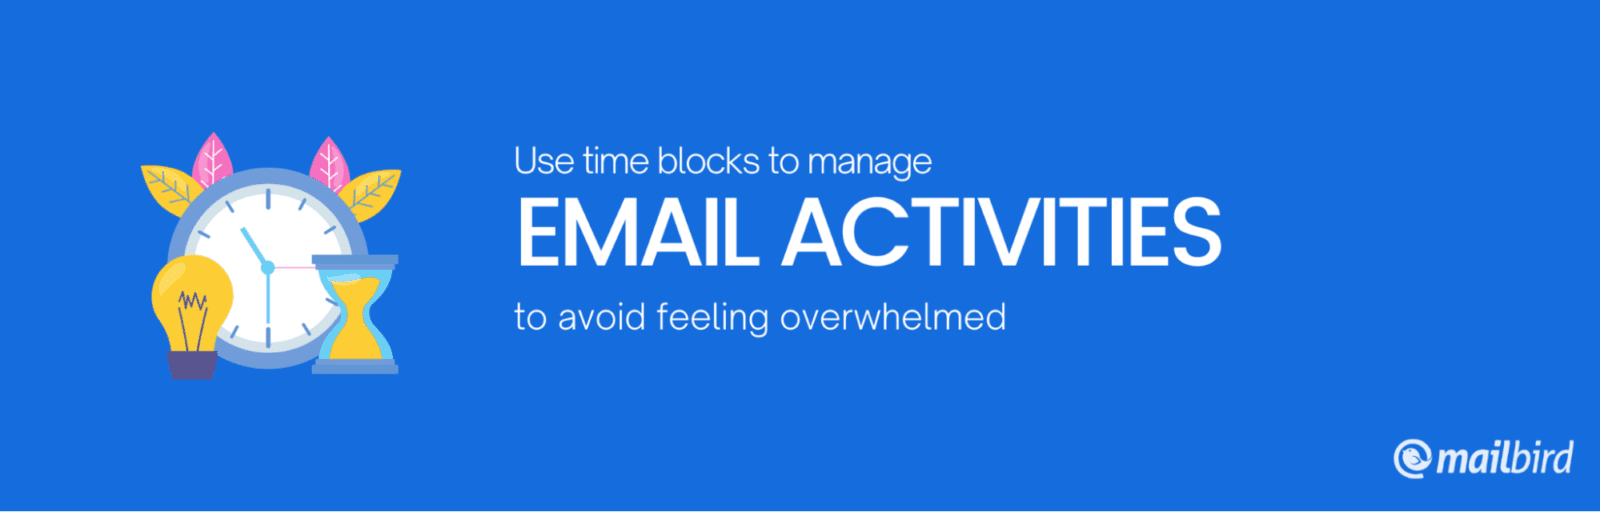 use time blocks for email